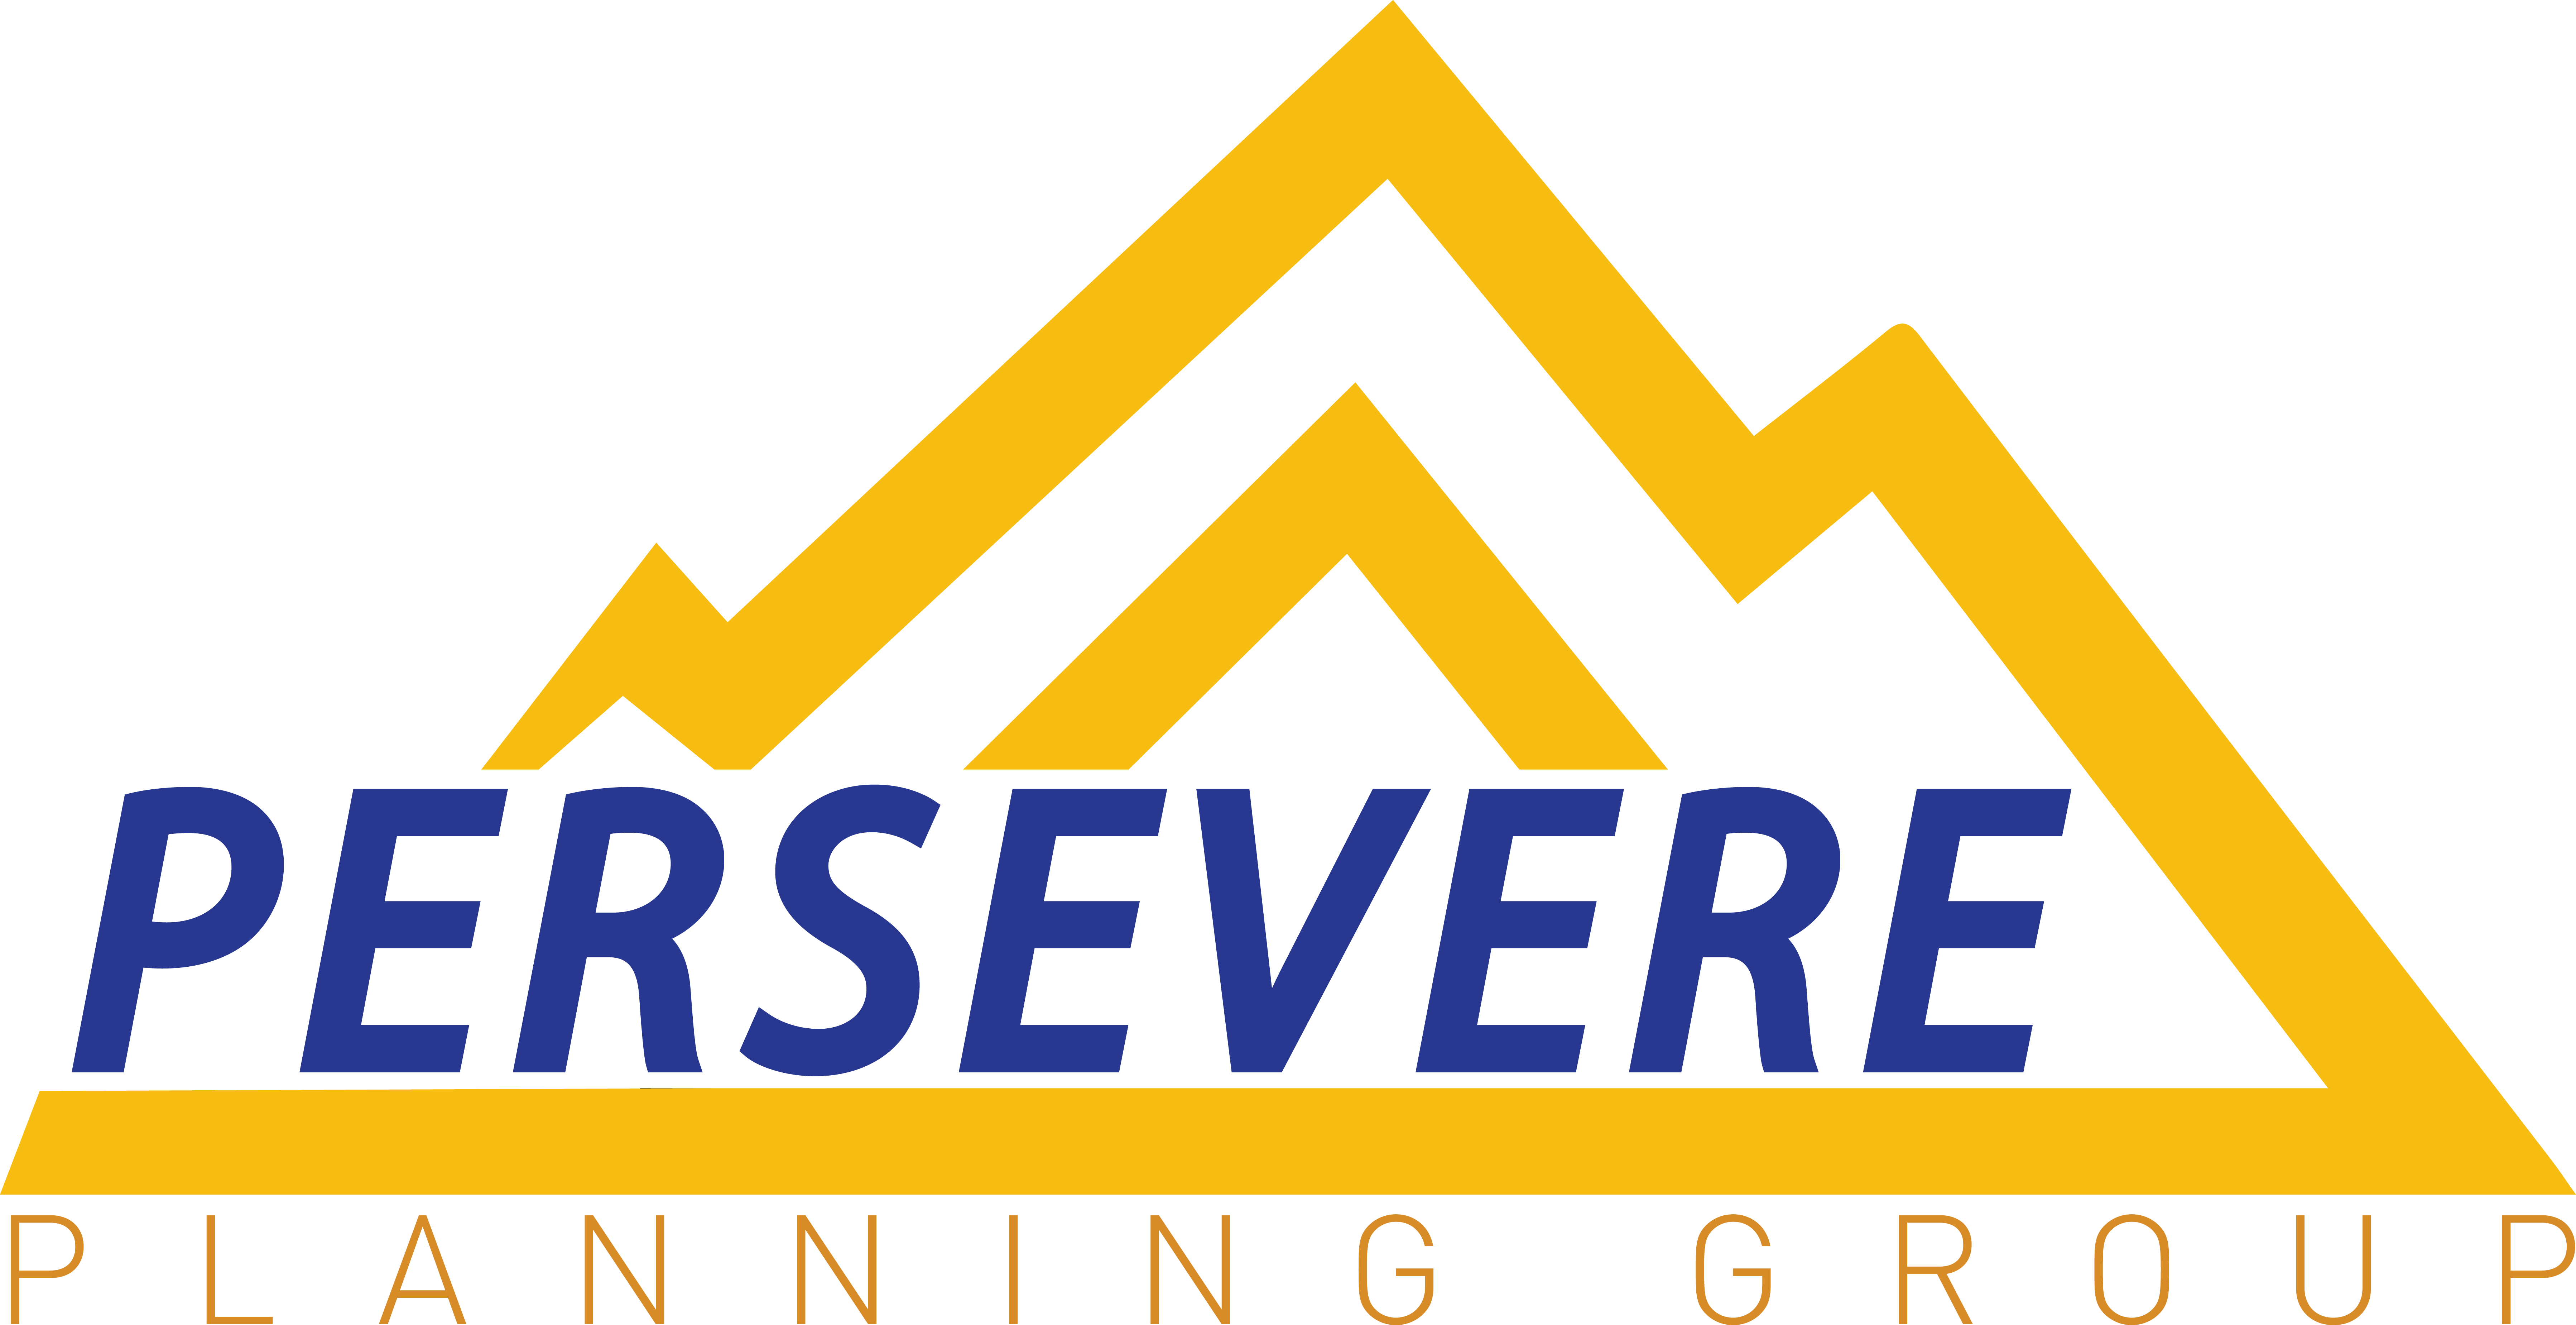 PERSEVERE PLANNING GROUP